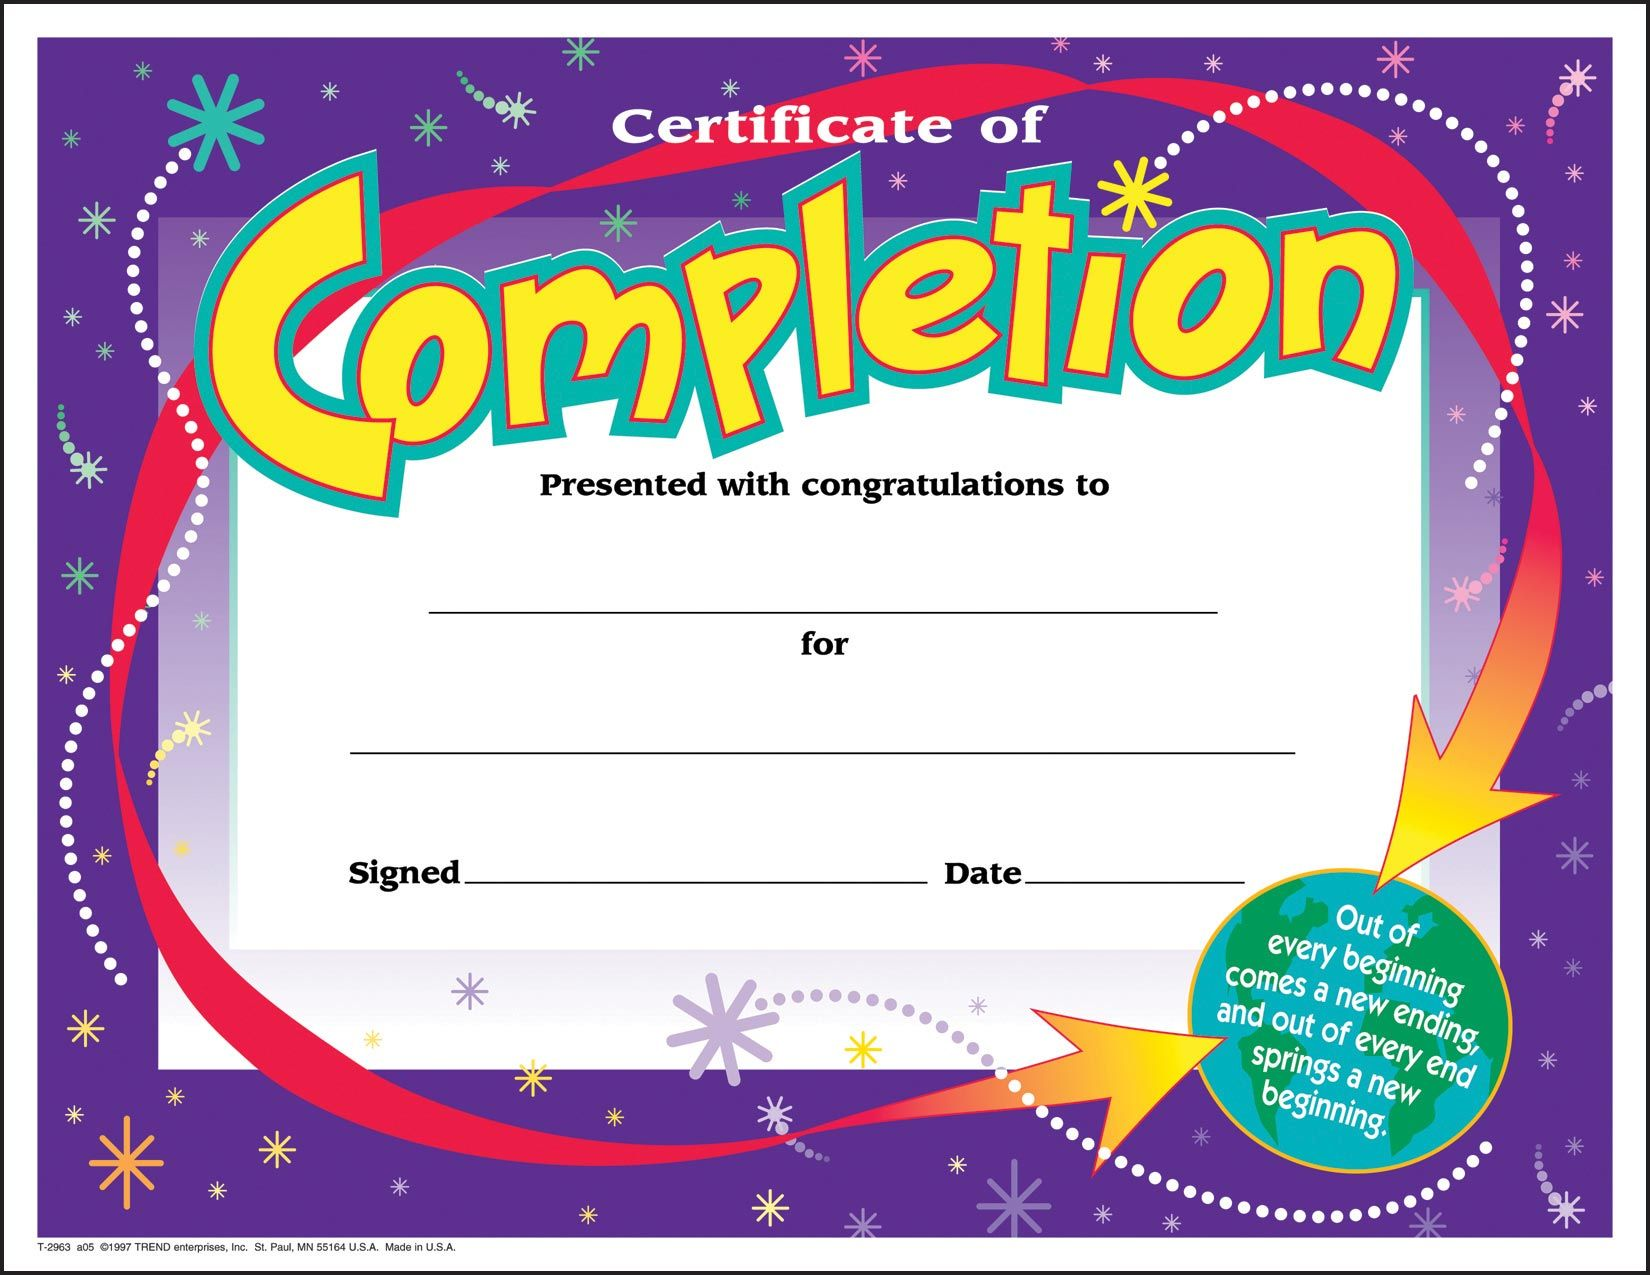 30 certificates of completion large certificate award pack by 30 certificates of completion large certificate award pack by trend xflitez Gallery